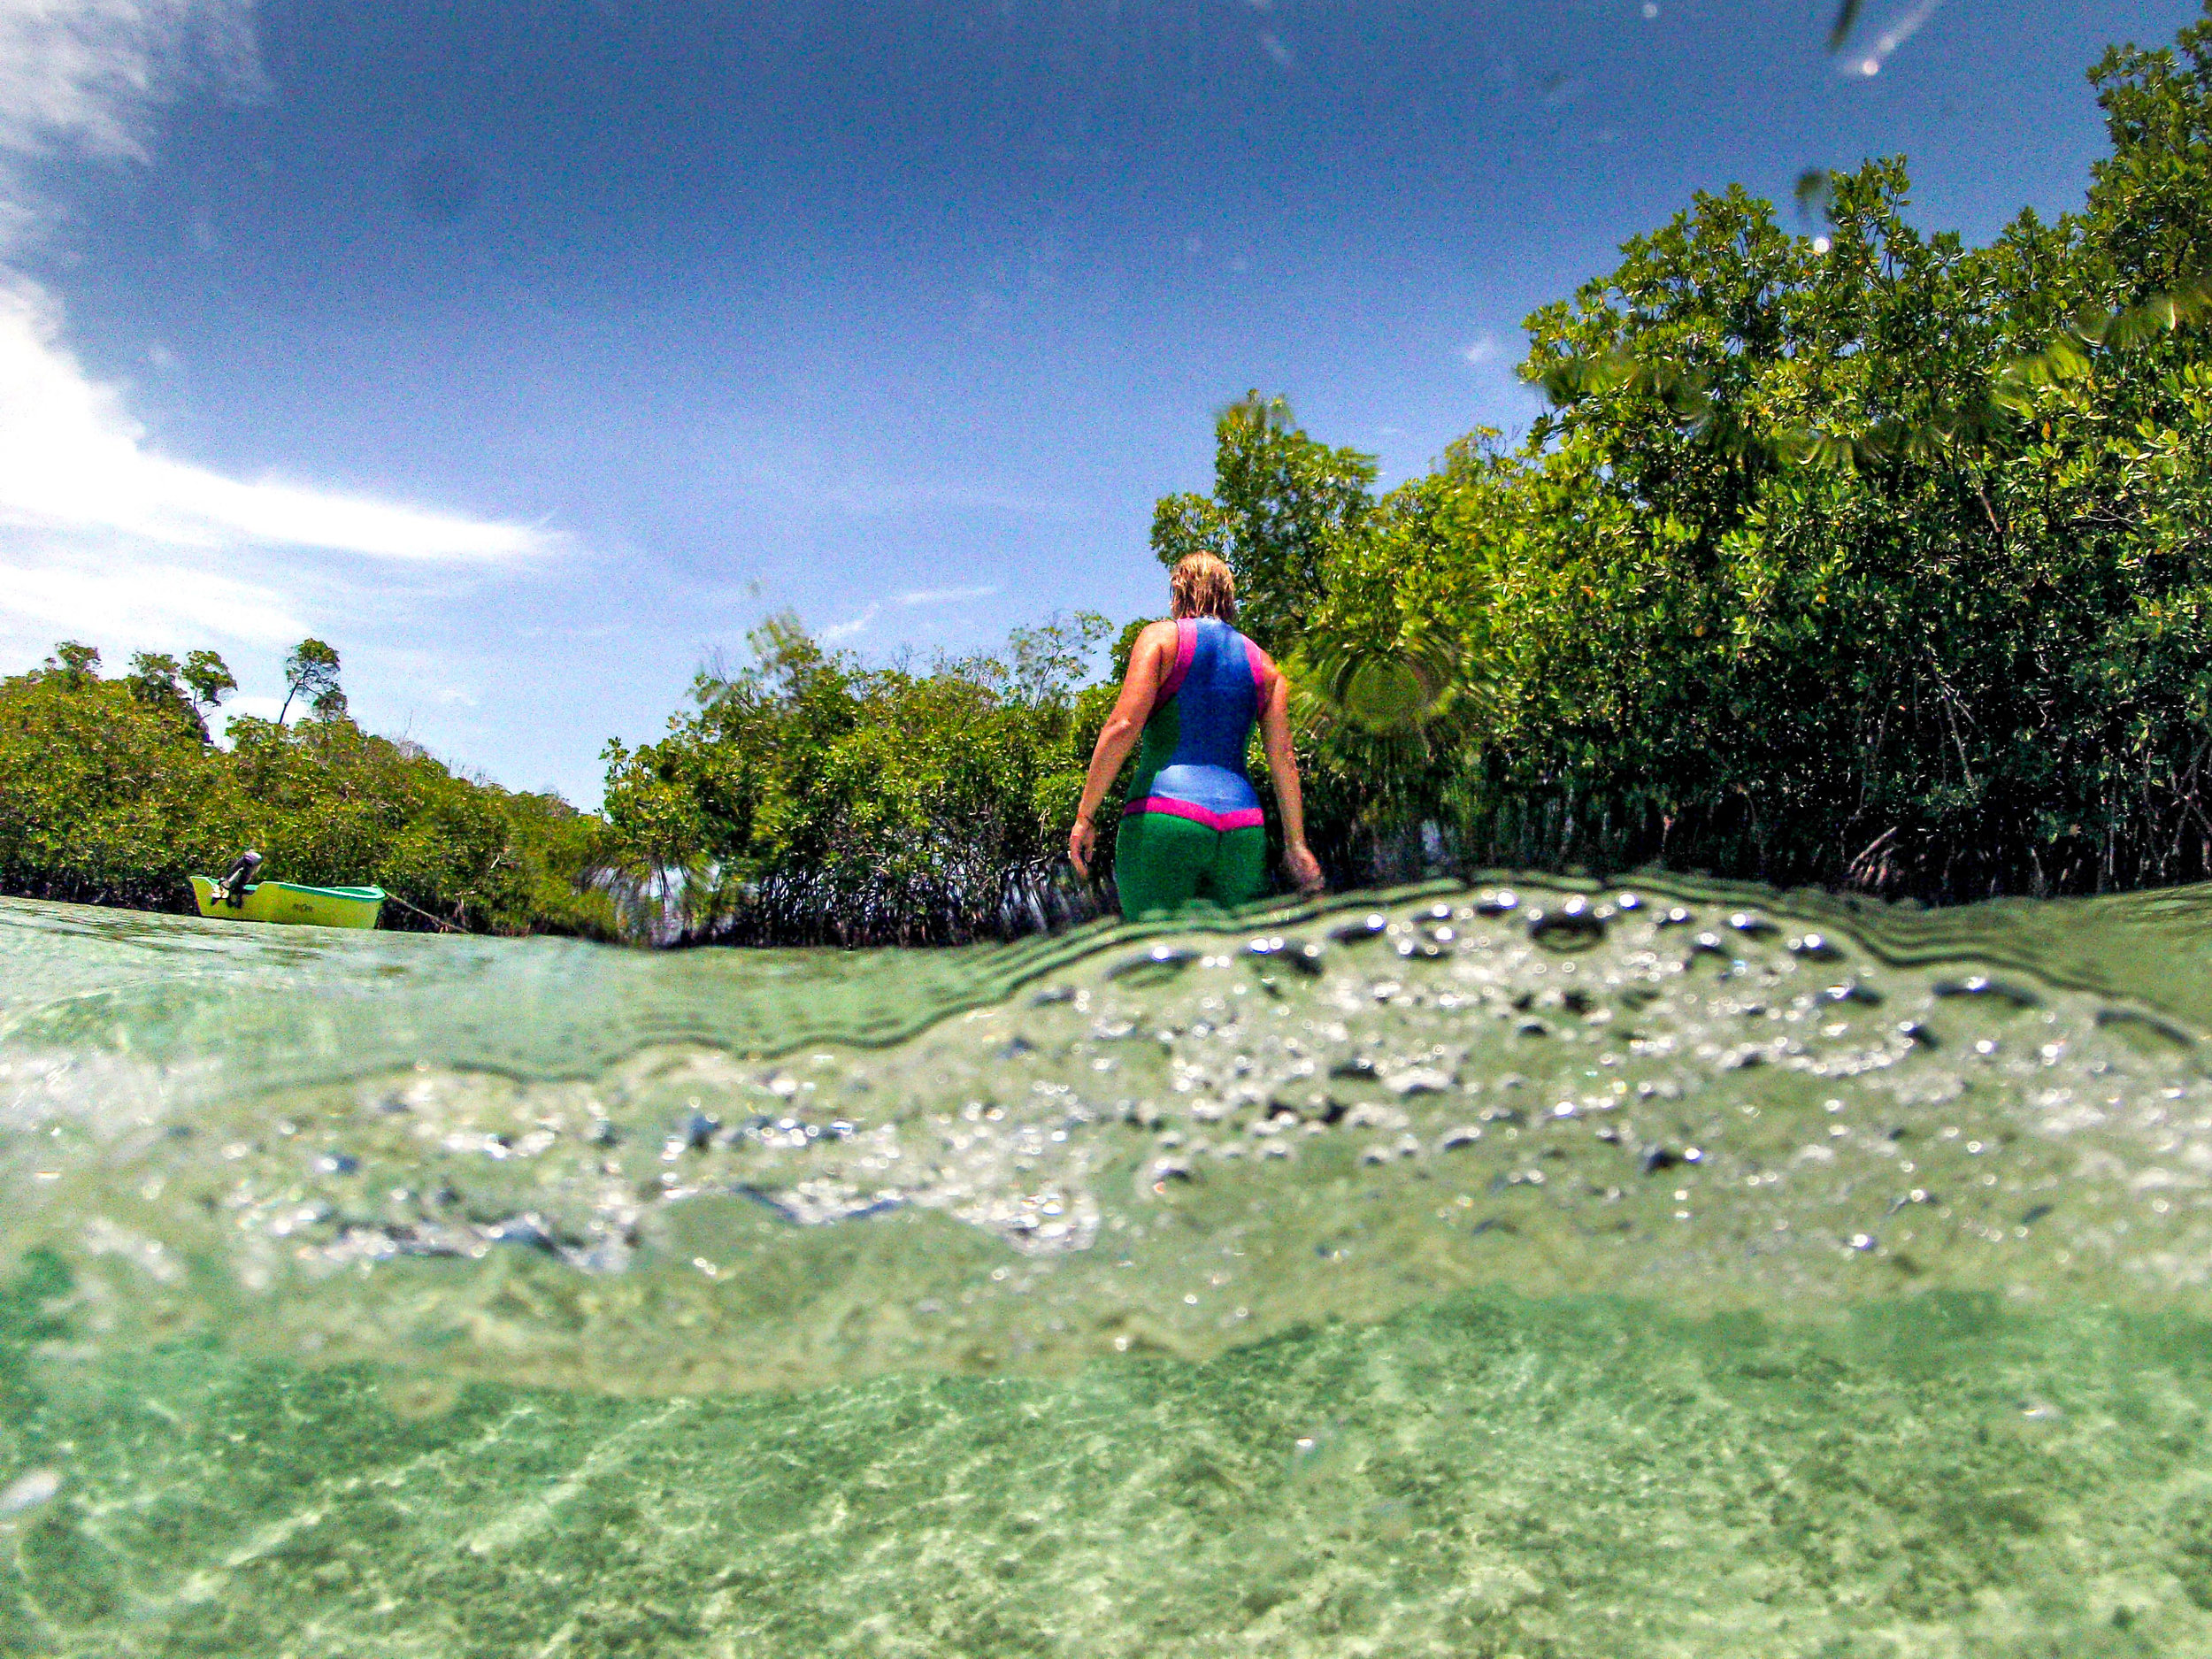 A major reason why I love Truli Wetsuits is because Mia incorporates eco-friendly processes that utilize neoprene made from natural rubber rather than chemically processed rubber from petroleum products.